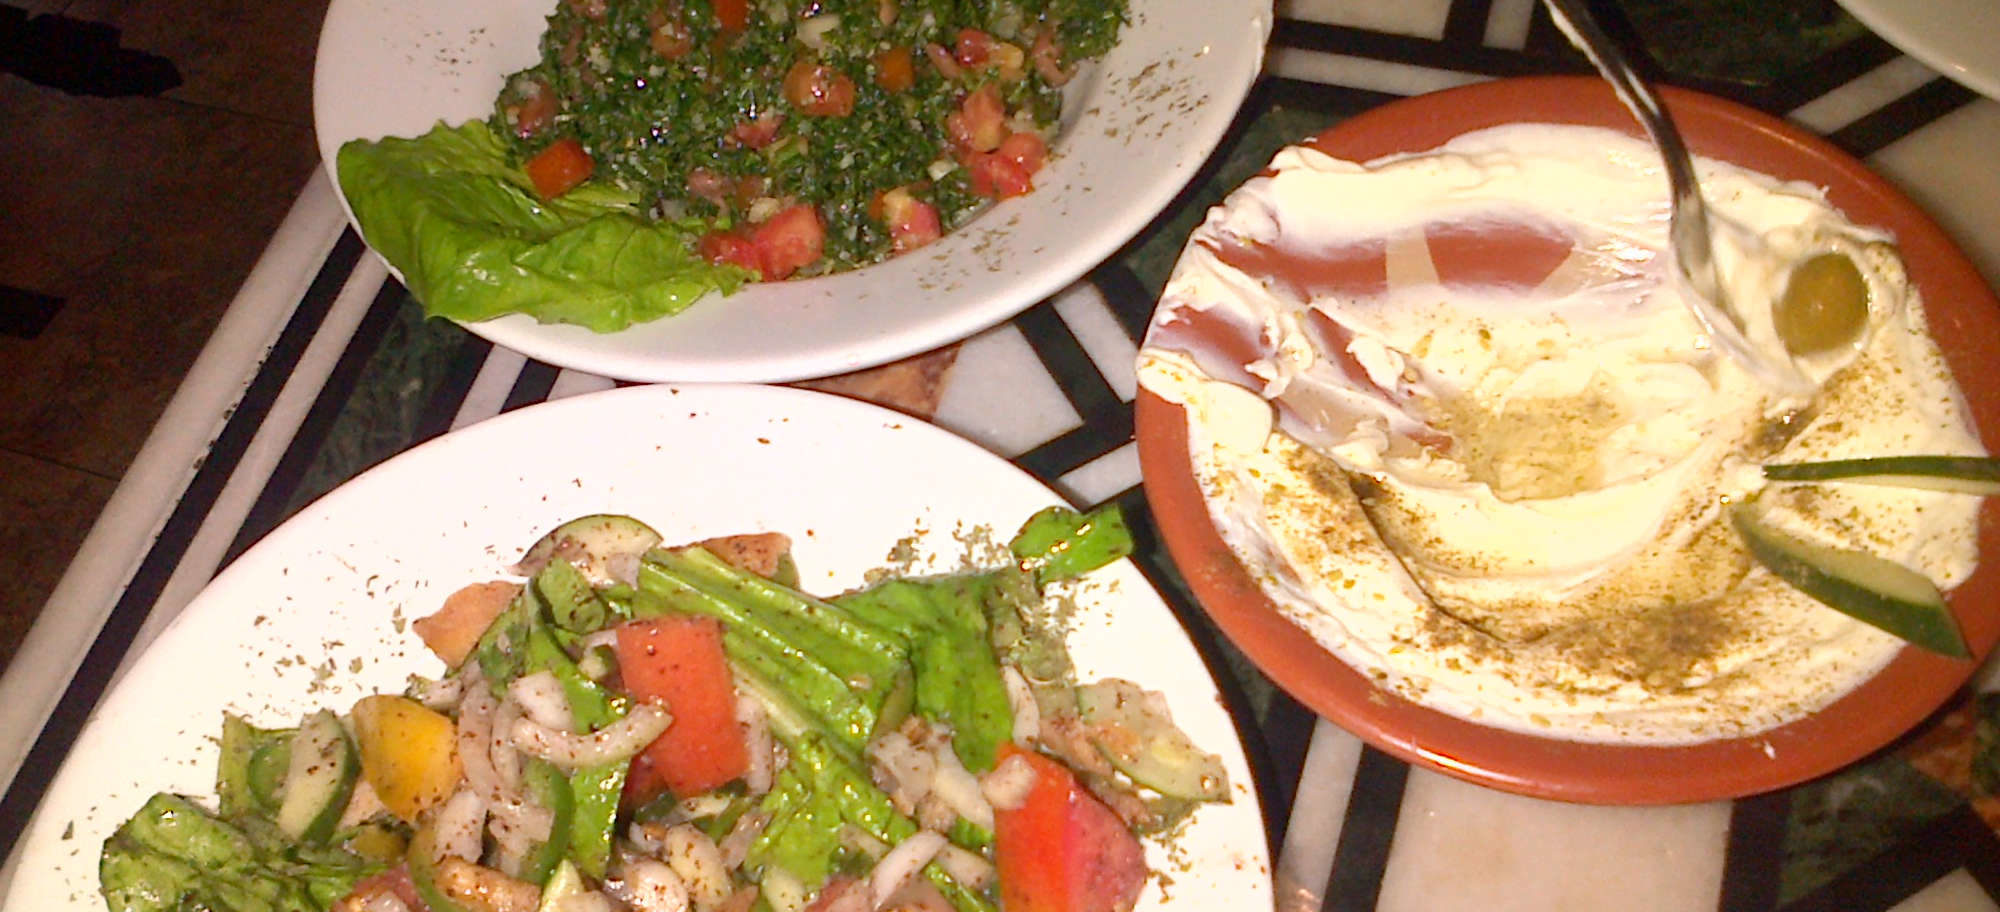 Beirut Panama Tabouleh Fatoush and Hummus